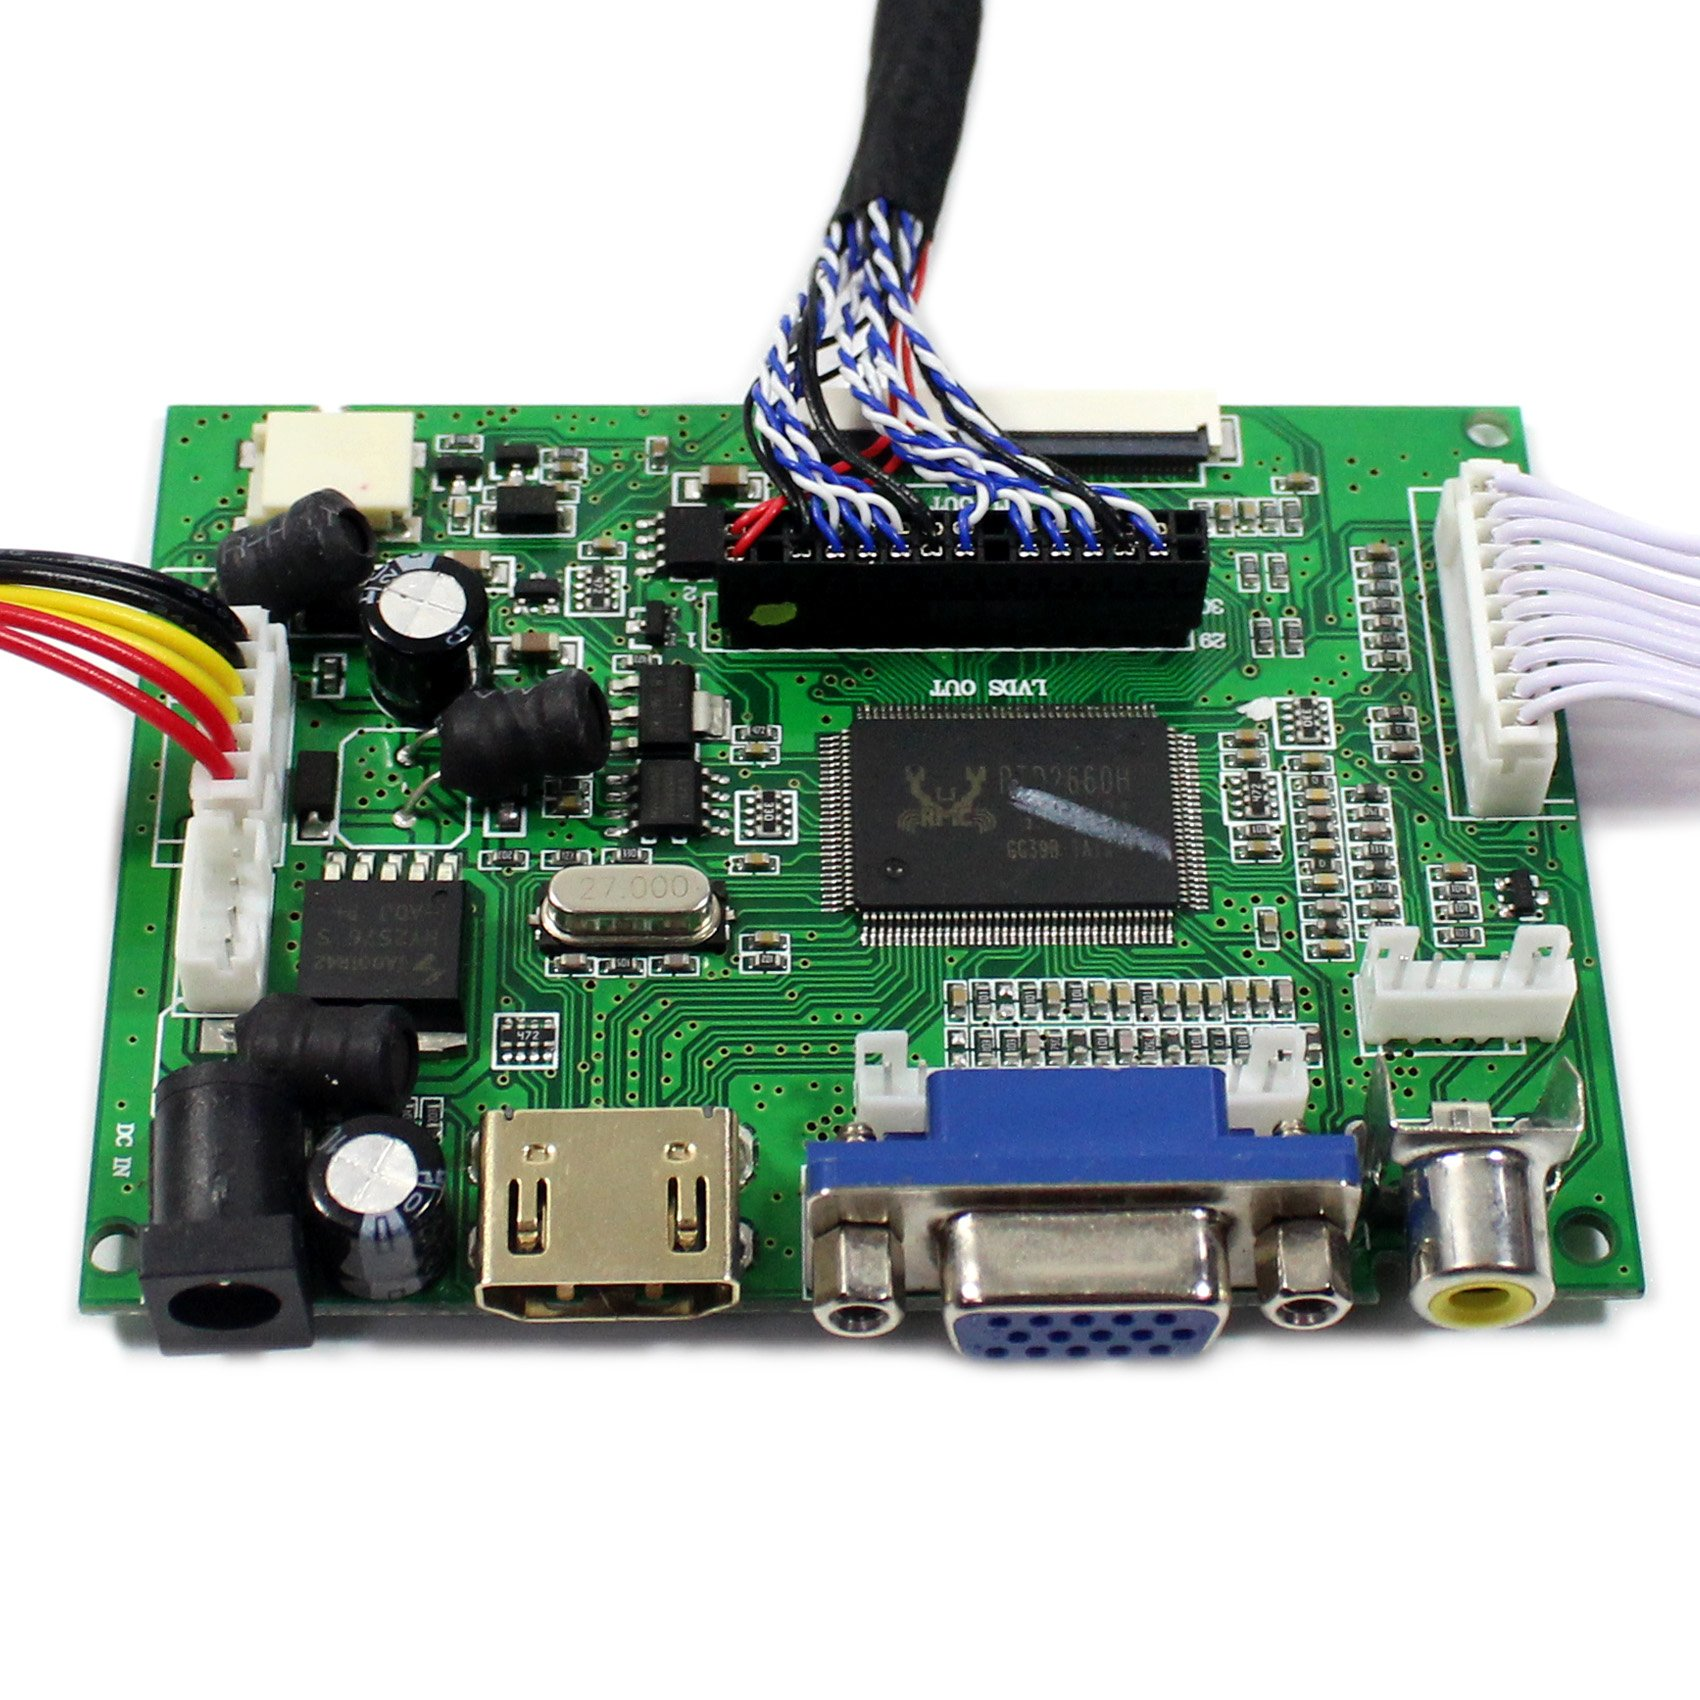 HDMI+VGA+2AV Input LCD Controller Board For B170PW04 LM171W02-TLB2 17'' 1440x900 2CCFL 30Pins LCD Panel by LCDBOARD (Image #4)